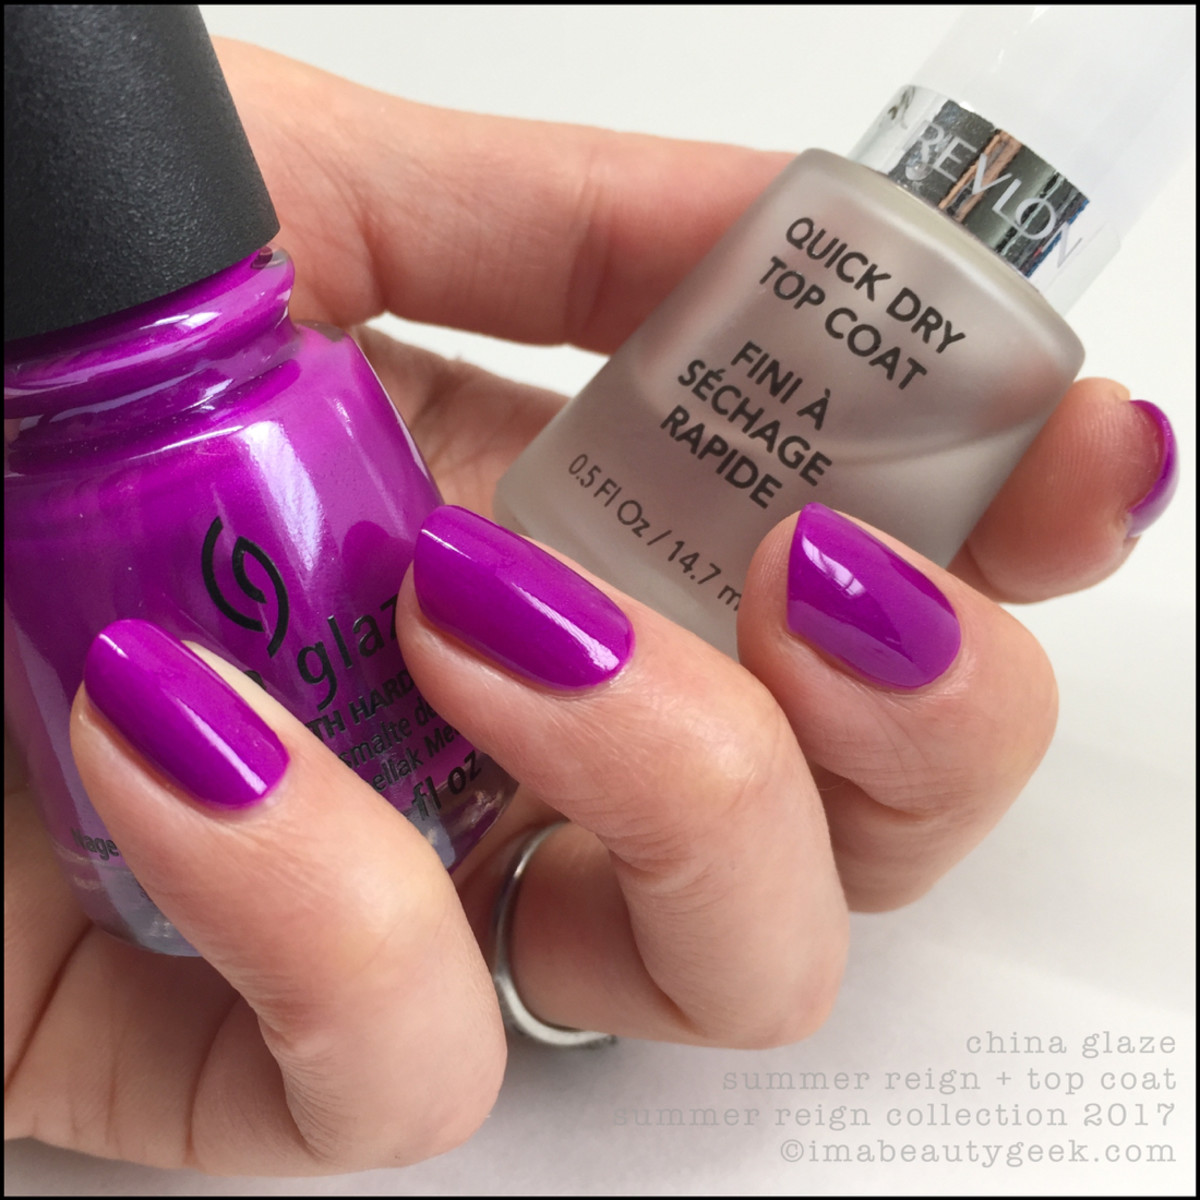 China Glaze Summer Reign w Top Coat